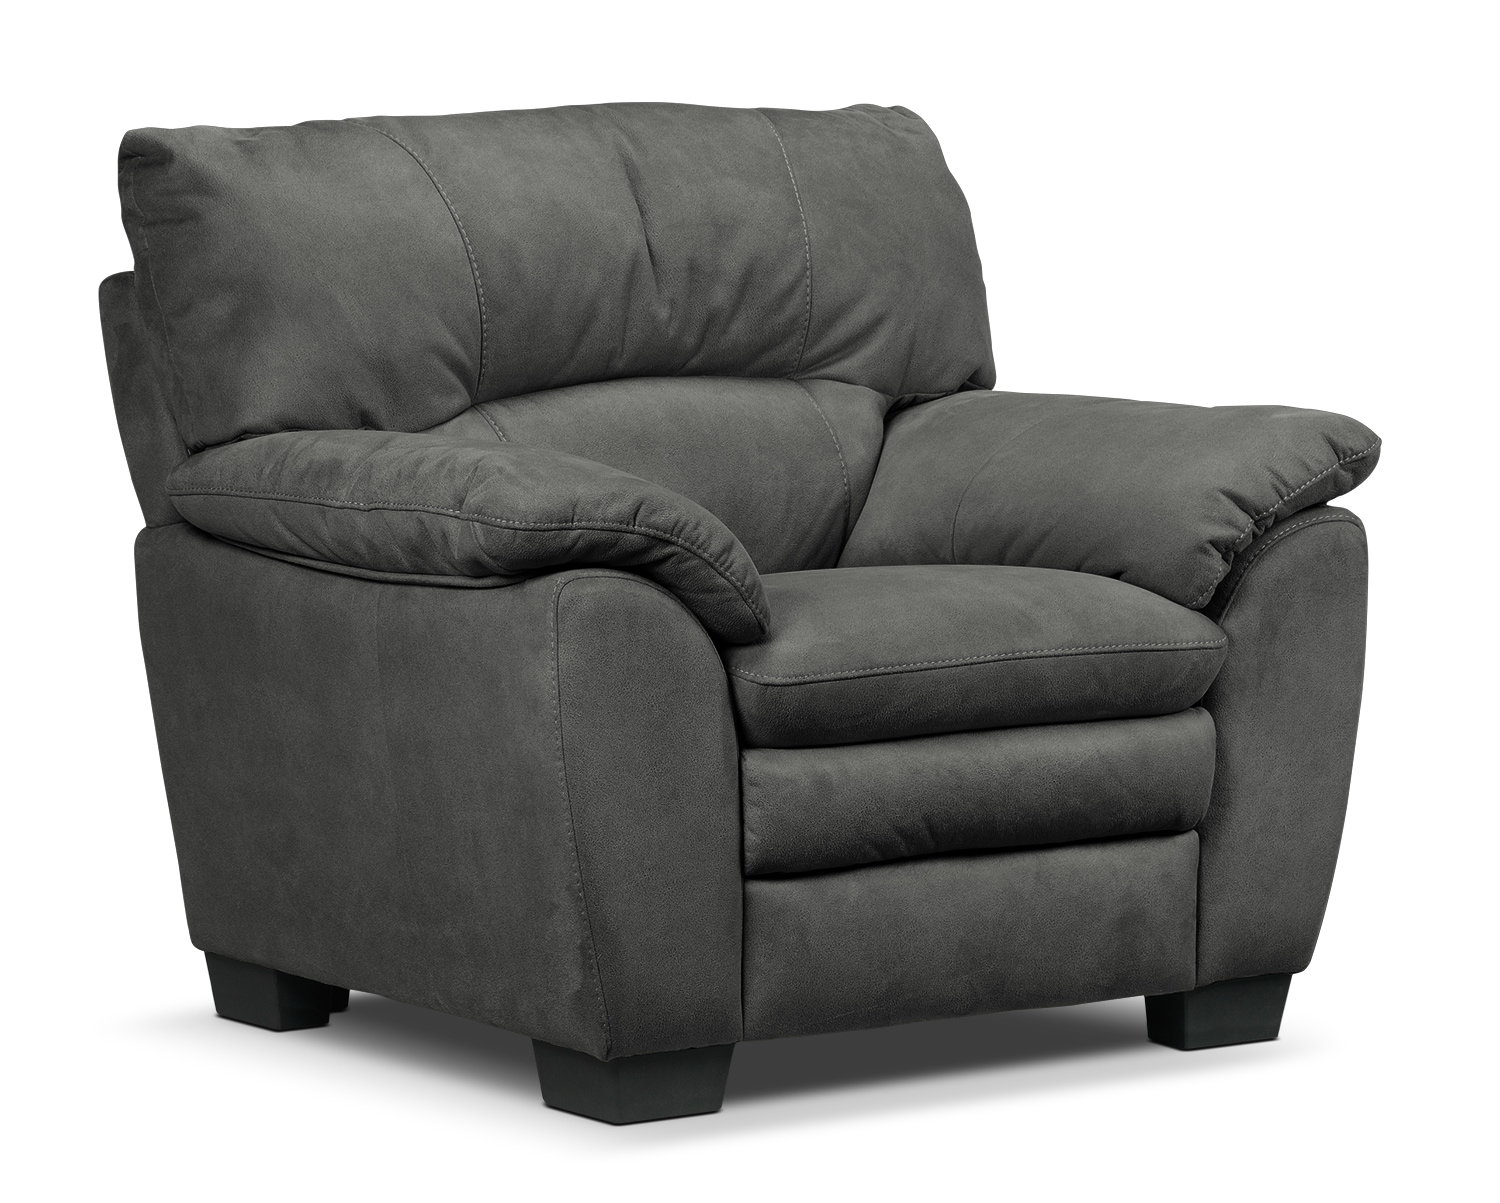 Living Room Furniture - Kelleher Charcoal Chair